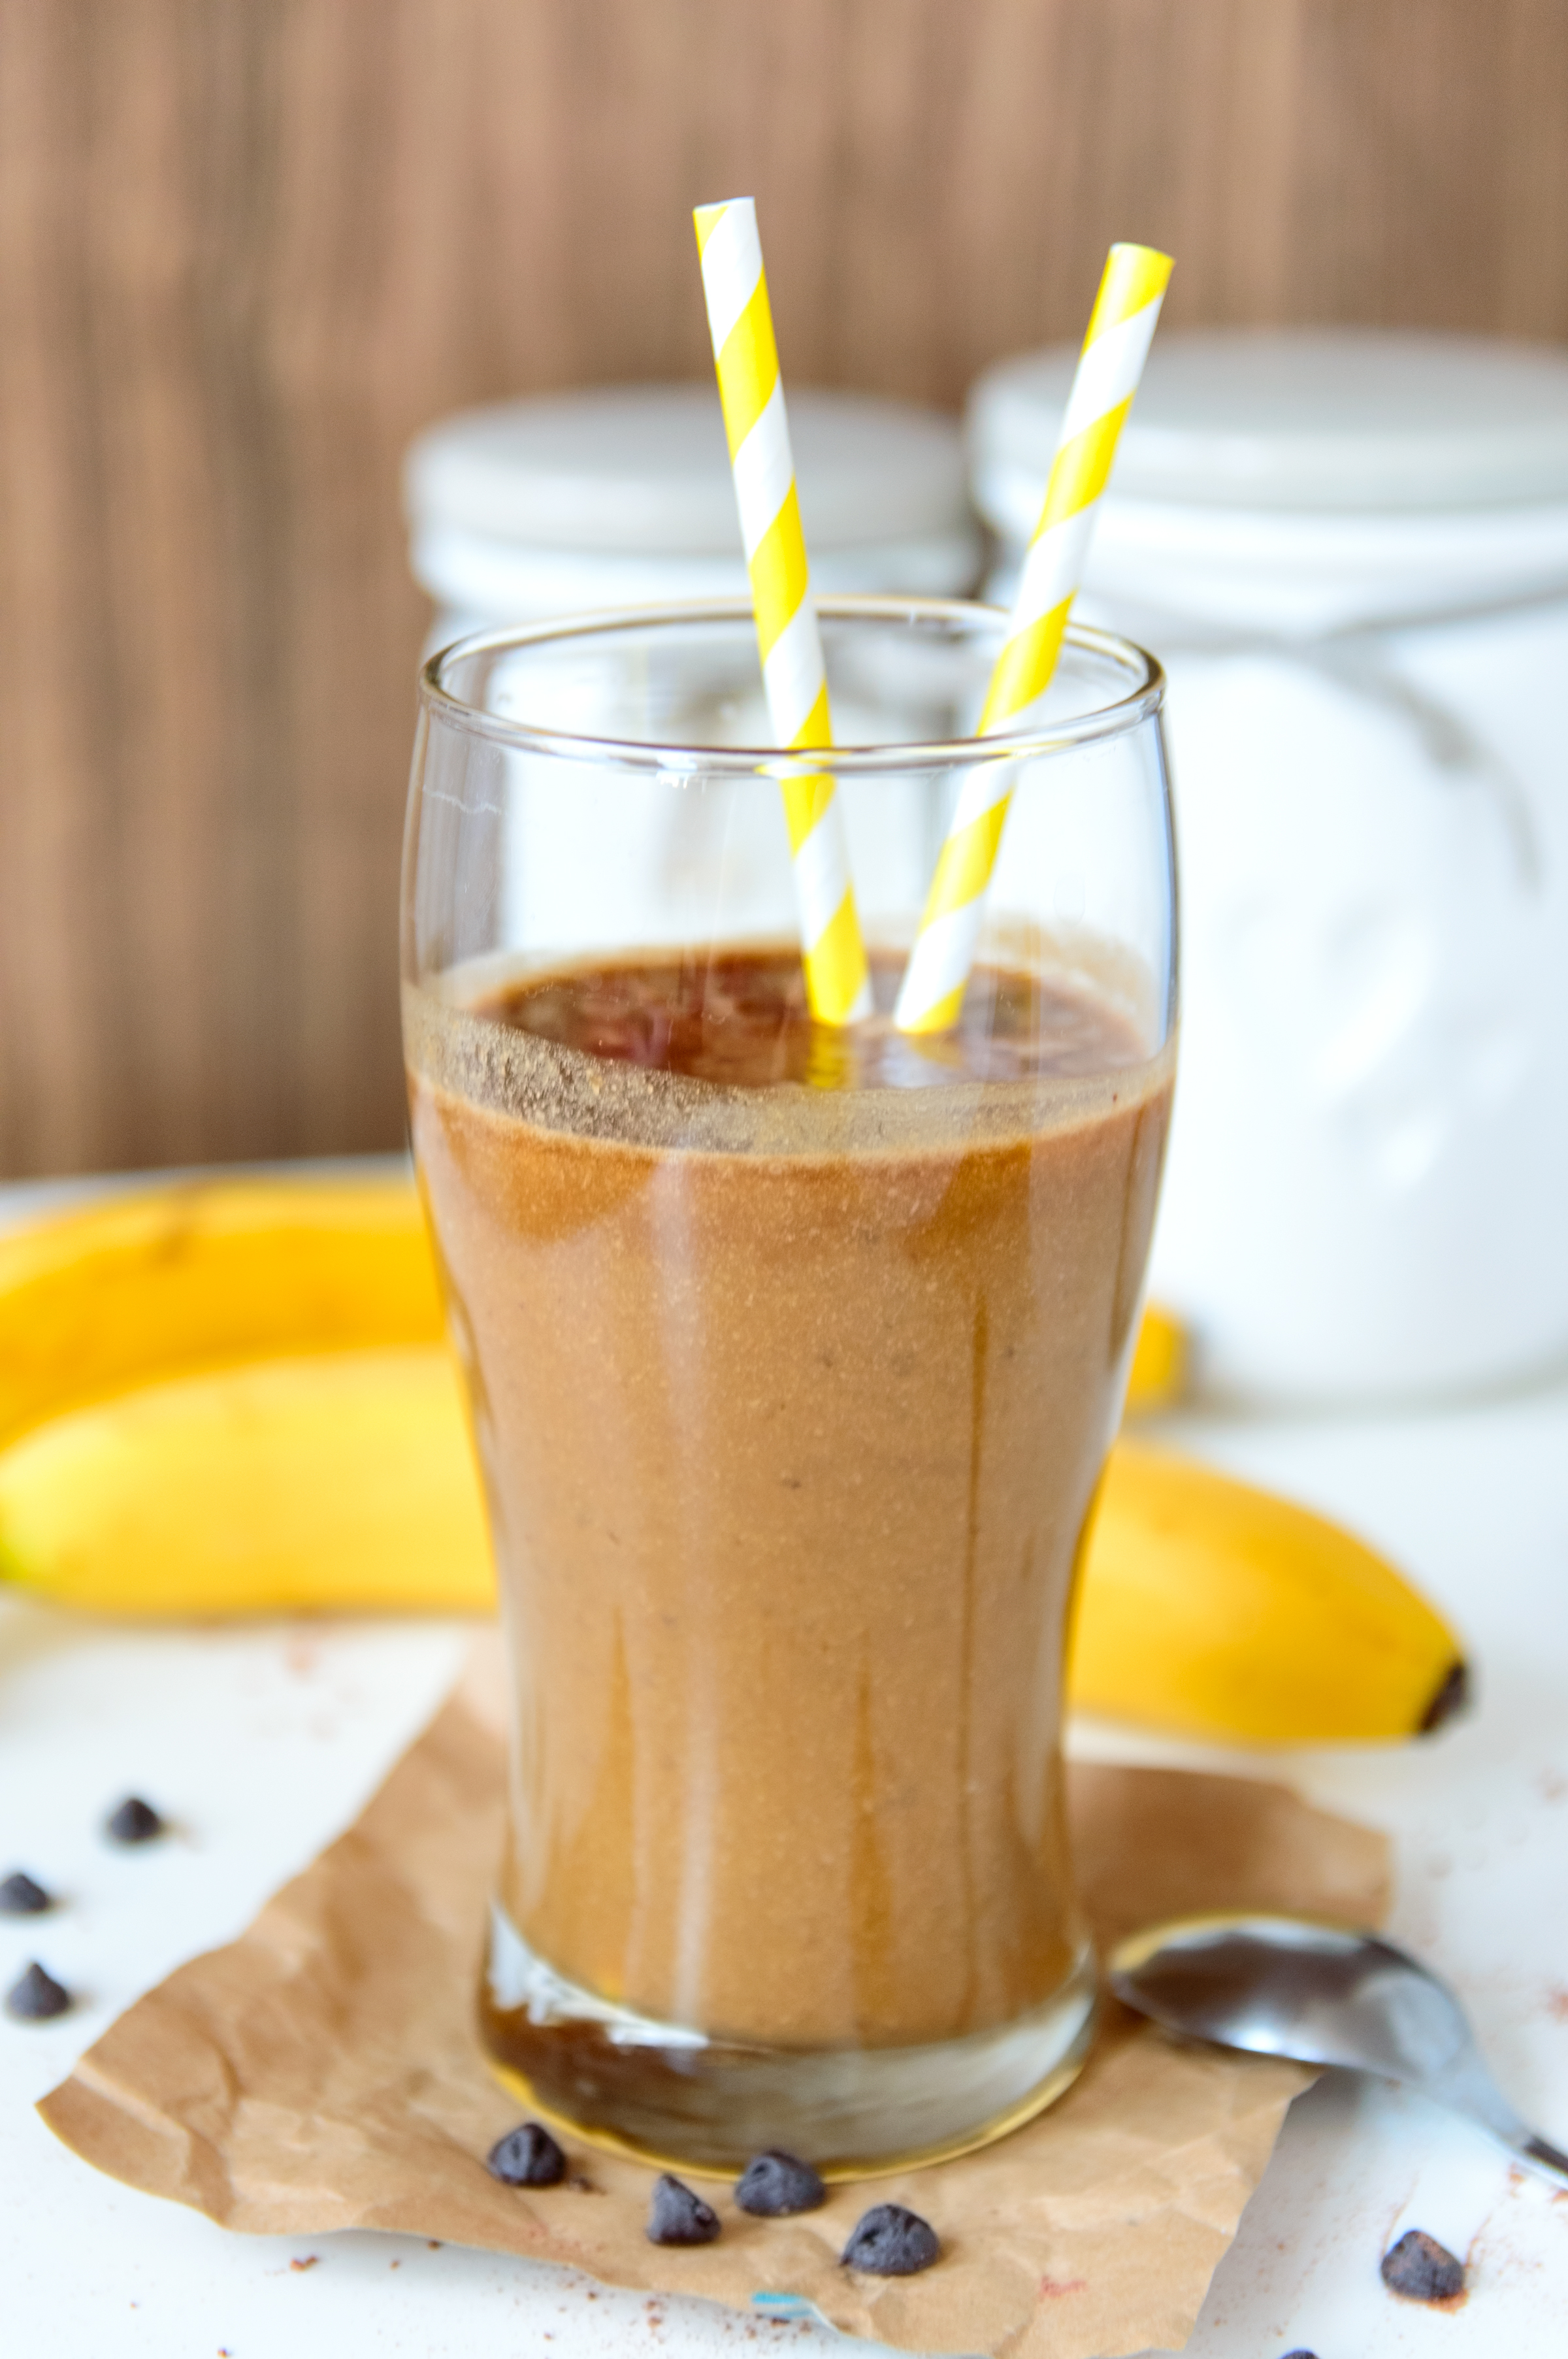 Peanut Butter, Banana and Coffee Smoothie